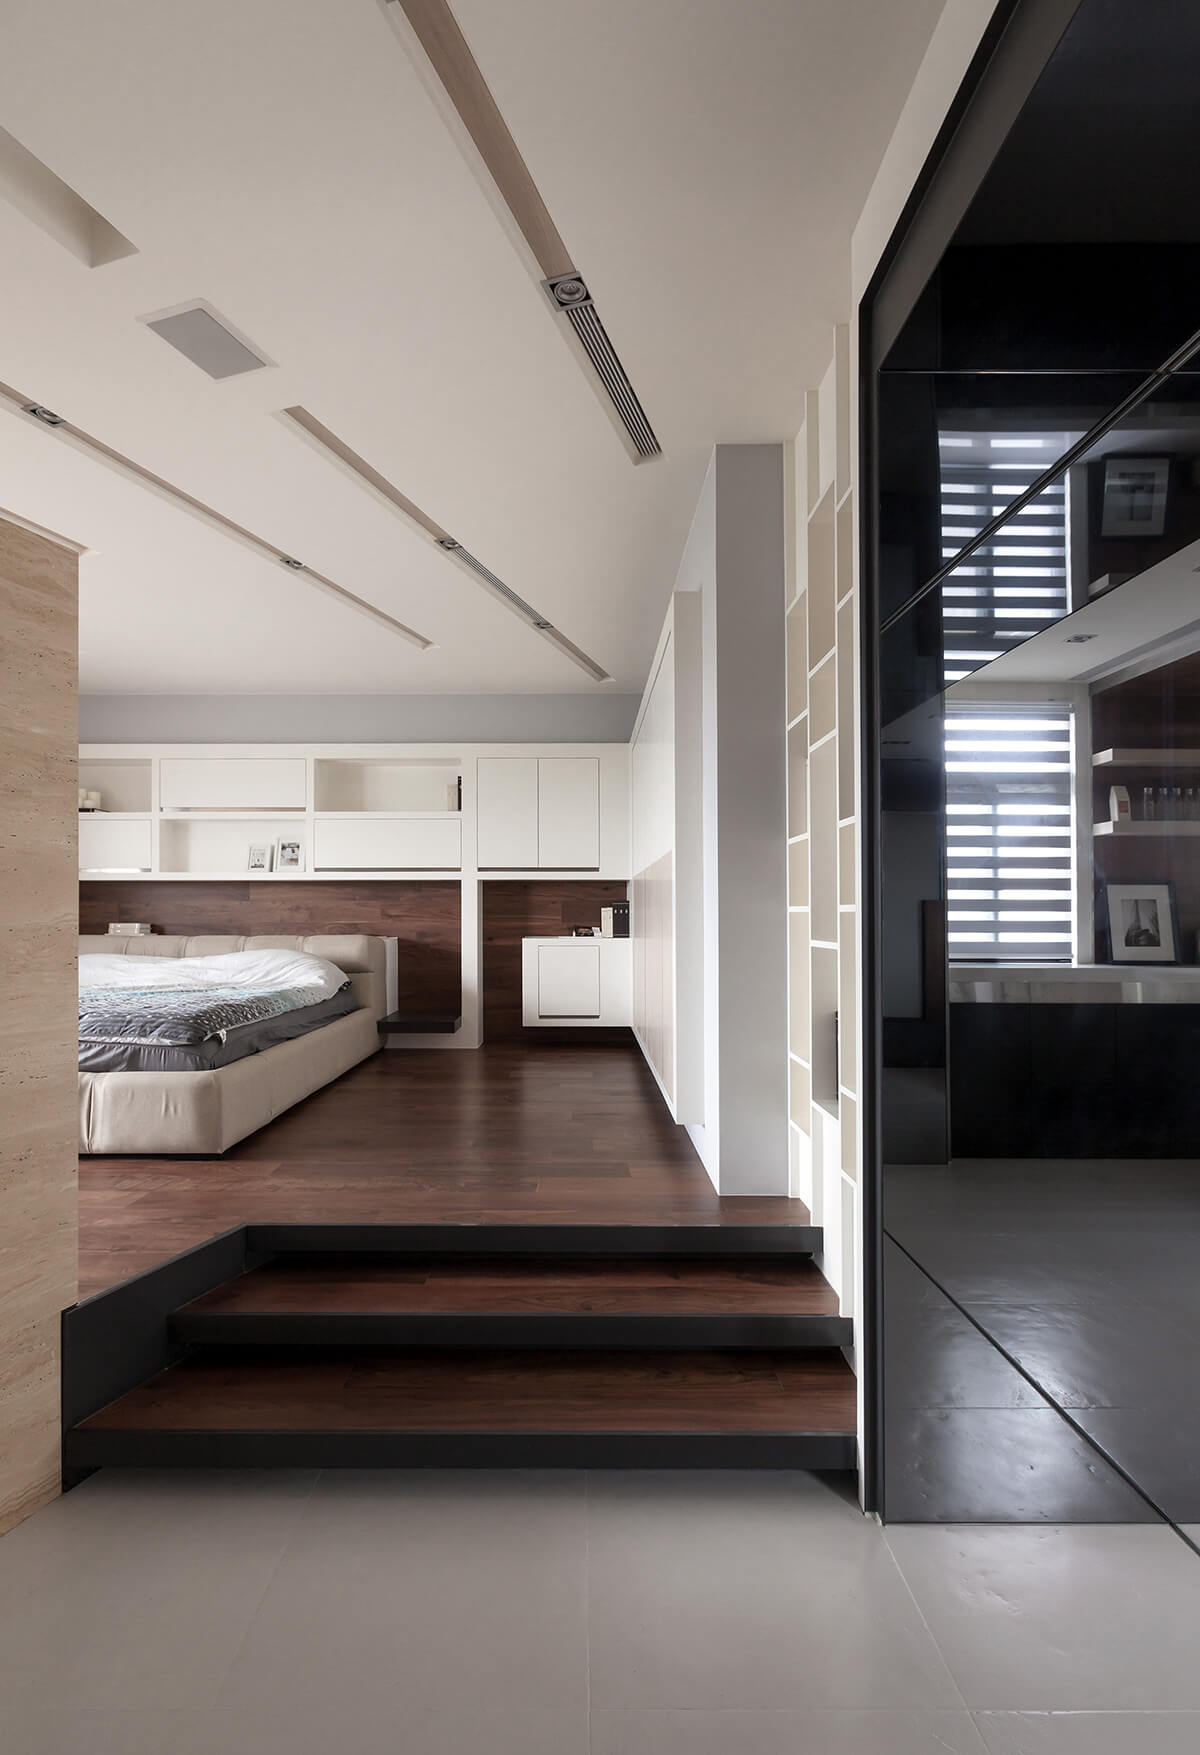 The mixture of rich natural wood tones and sleek white shelving in the bedroom makes for a striking high contrast appearance.